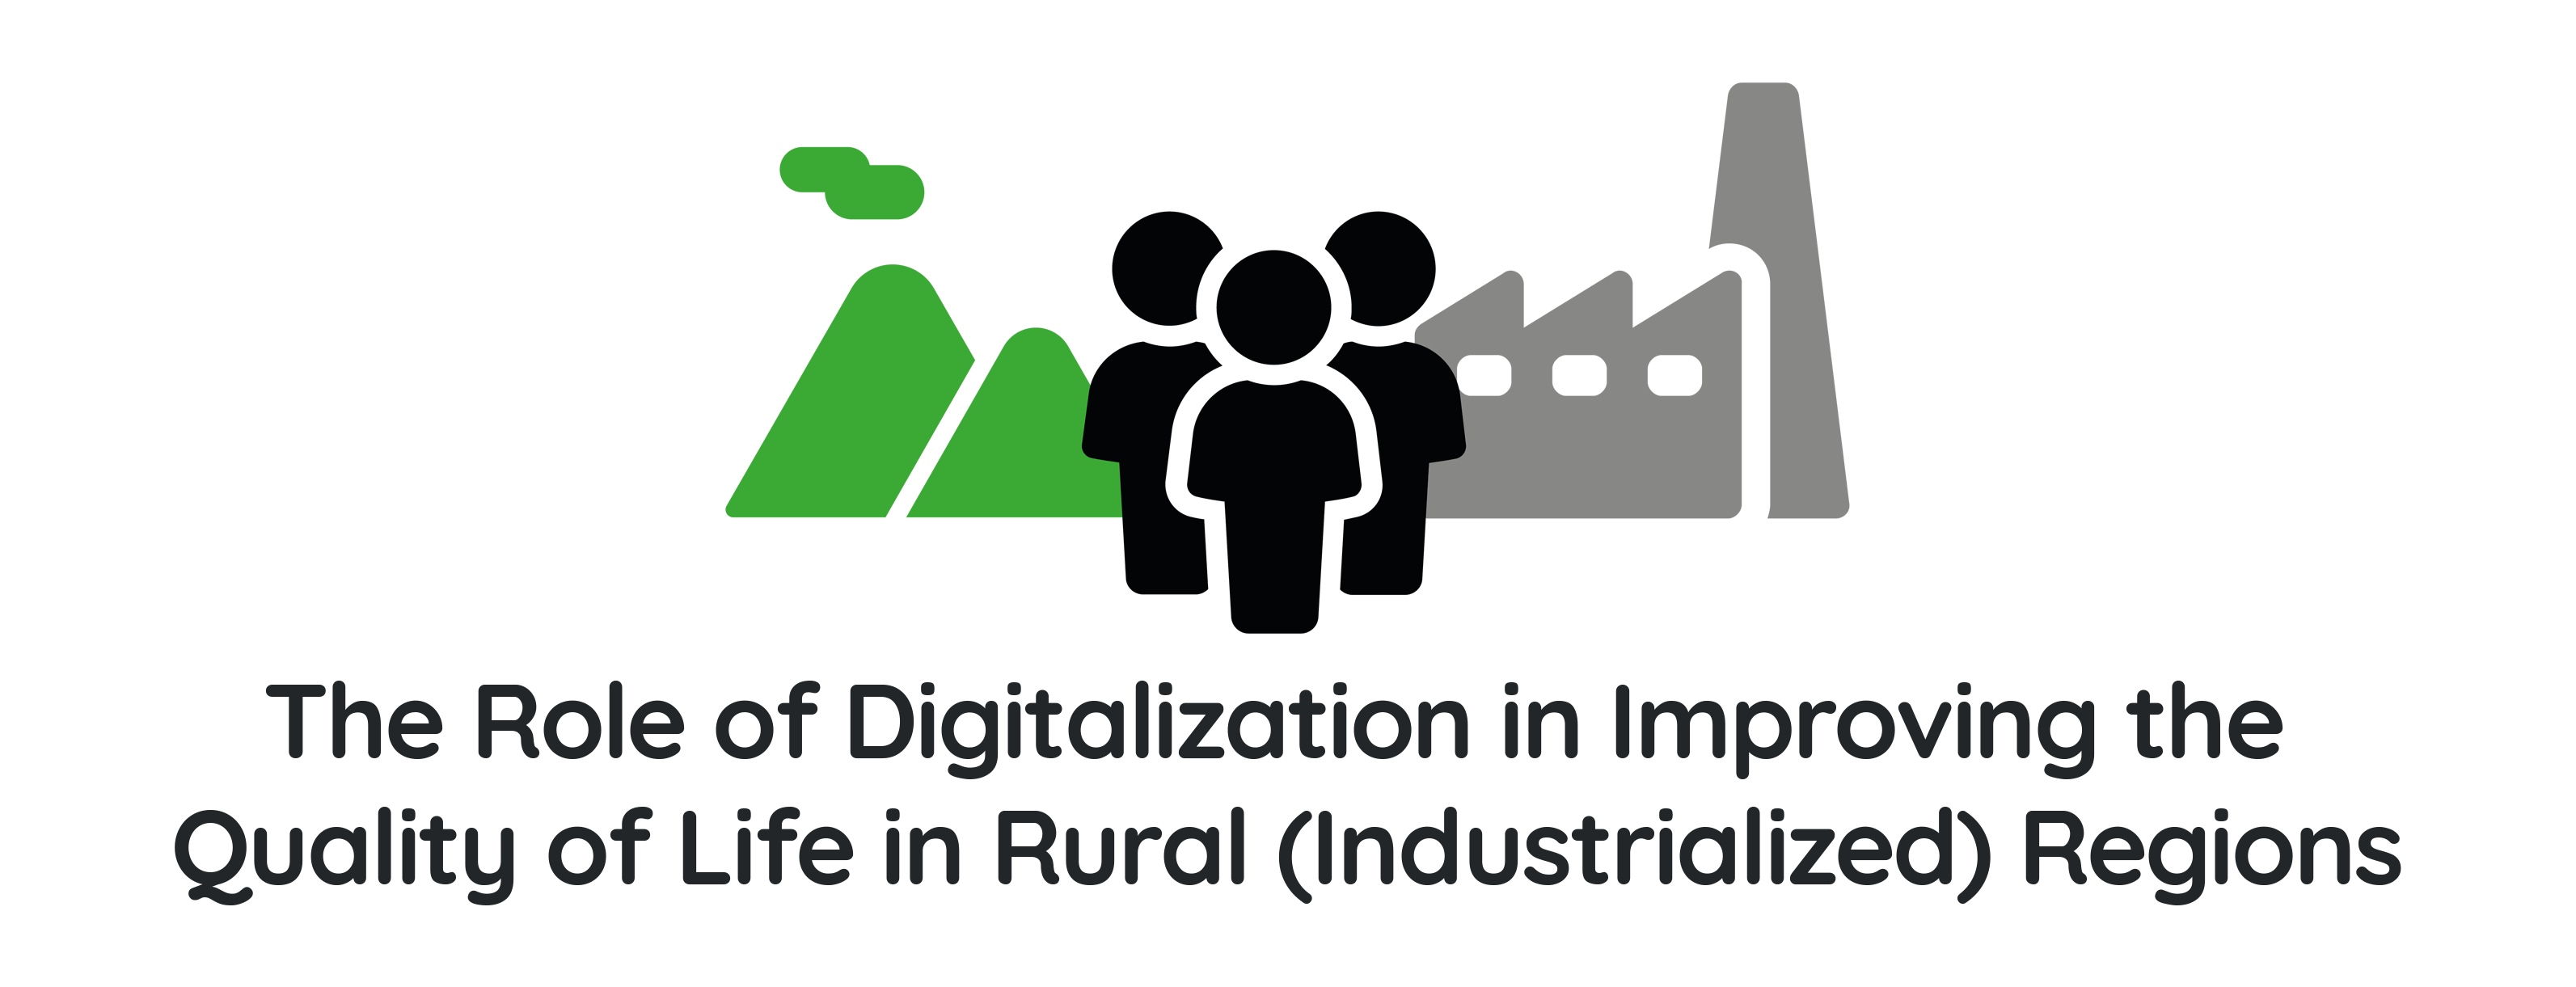 The Role of Digitalization in Improving the Quality of Life in Rural (Industrialized) Regions